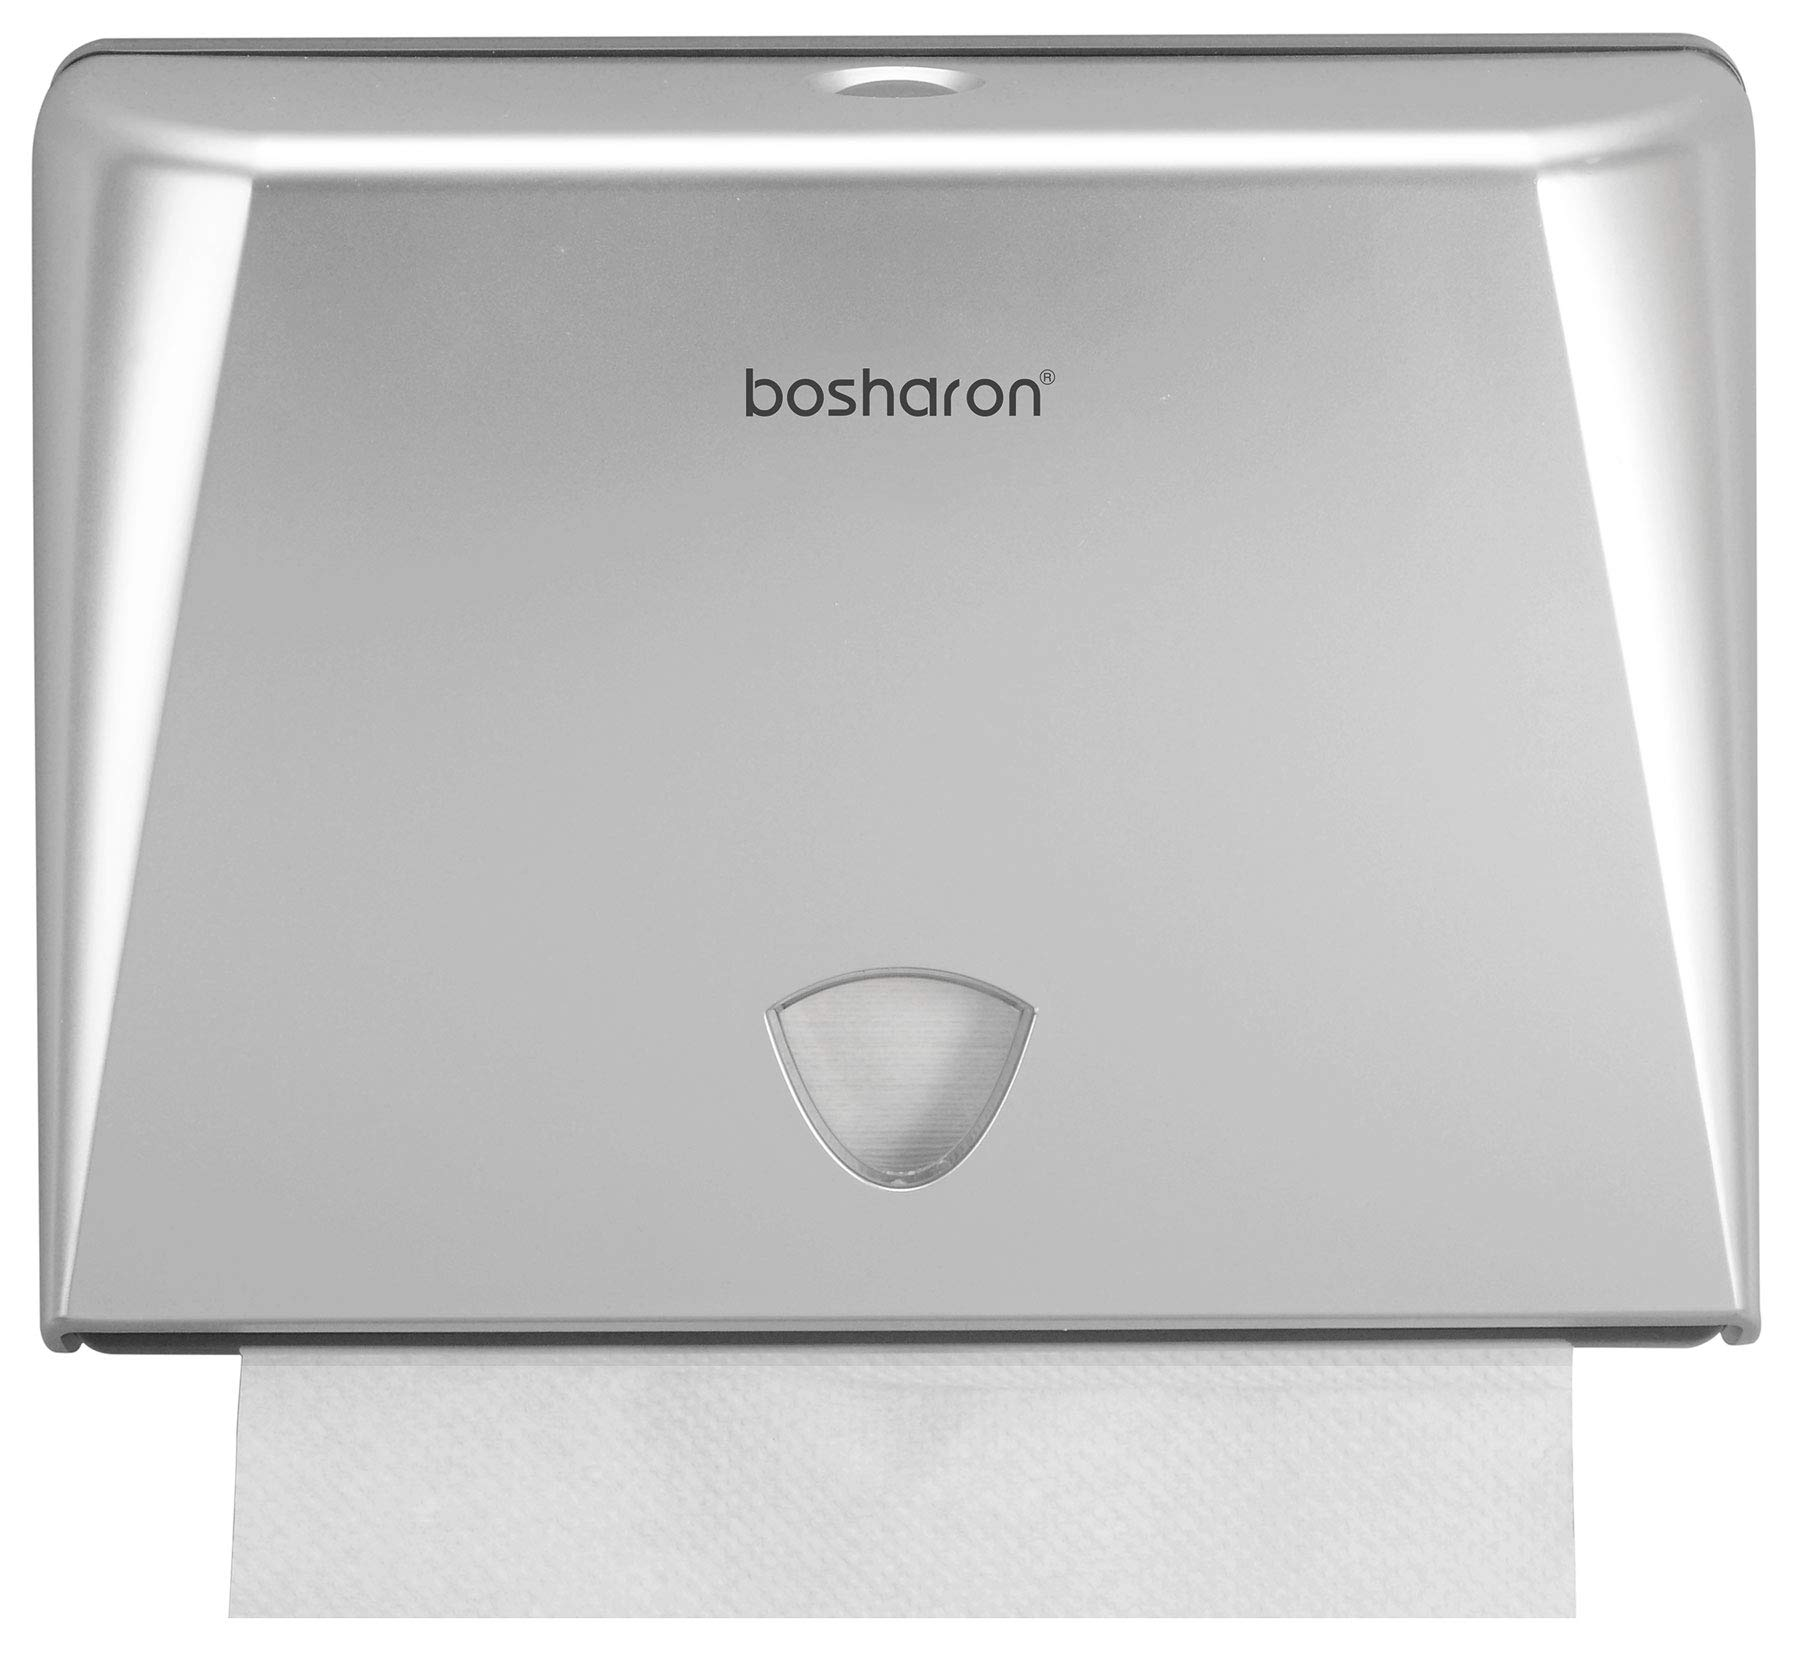 Bosharon Wall-Mounted Paper Towel Dispenser for Home and Commercial Use. Multifold Paper Towel and Tissue Holder for Bath, Kitchen, Office, Business (Silver) by Bosharon